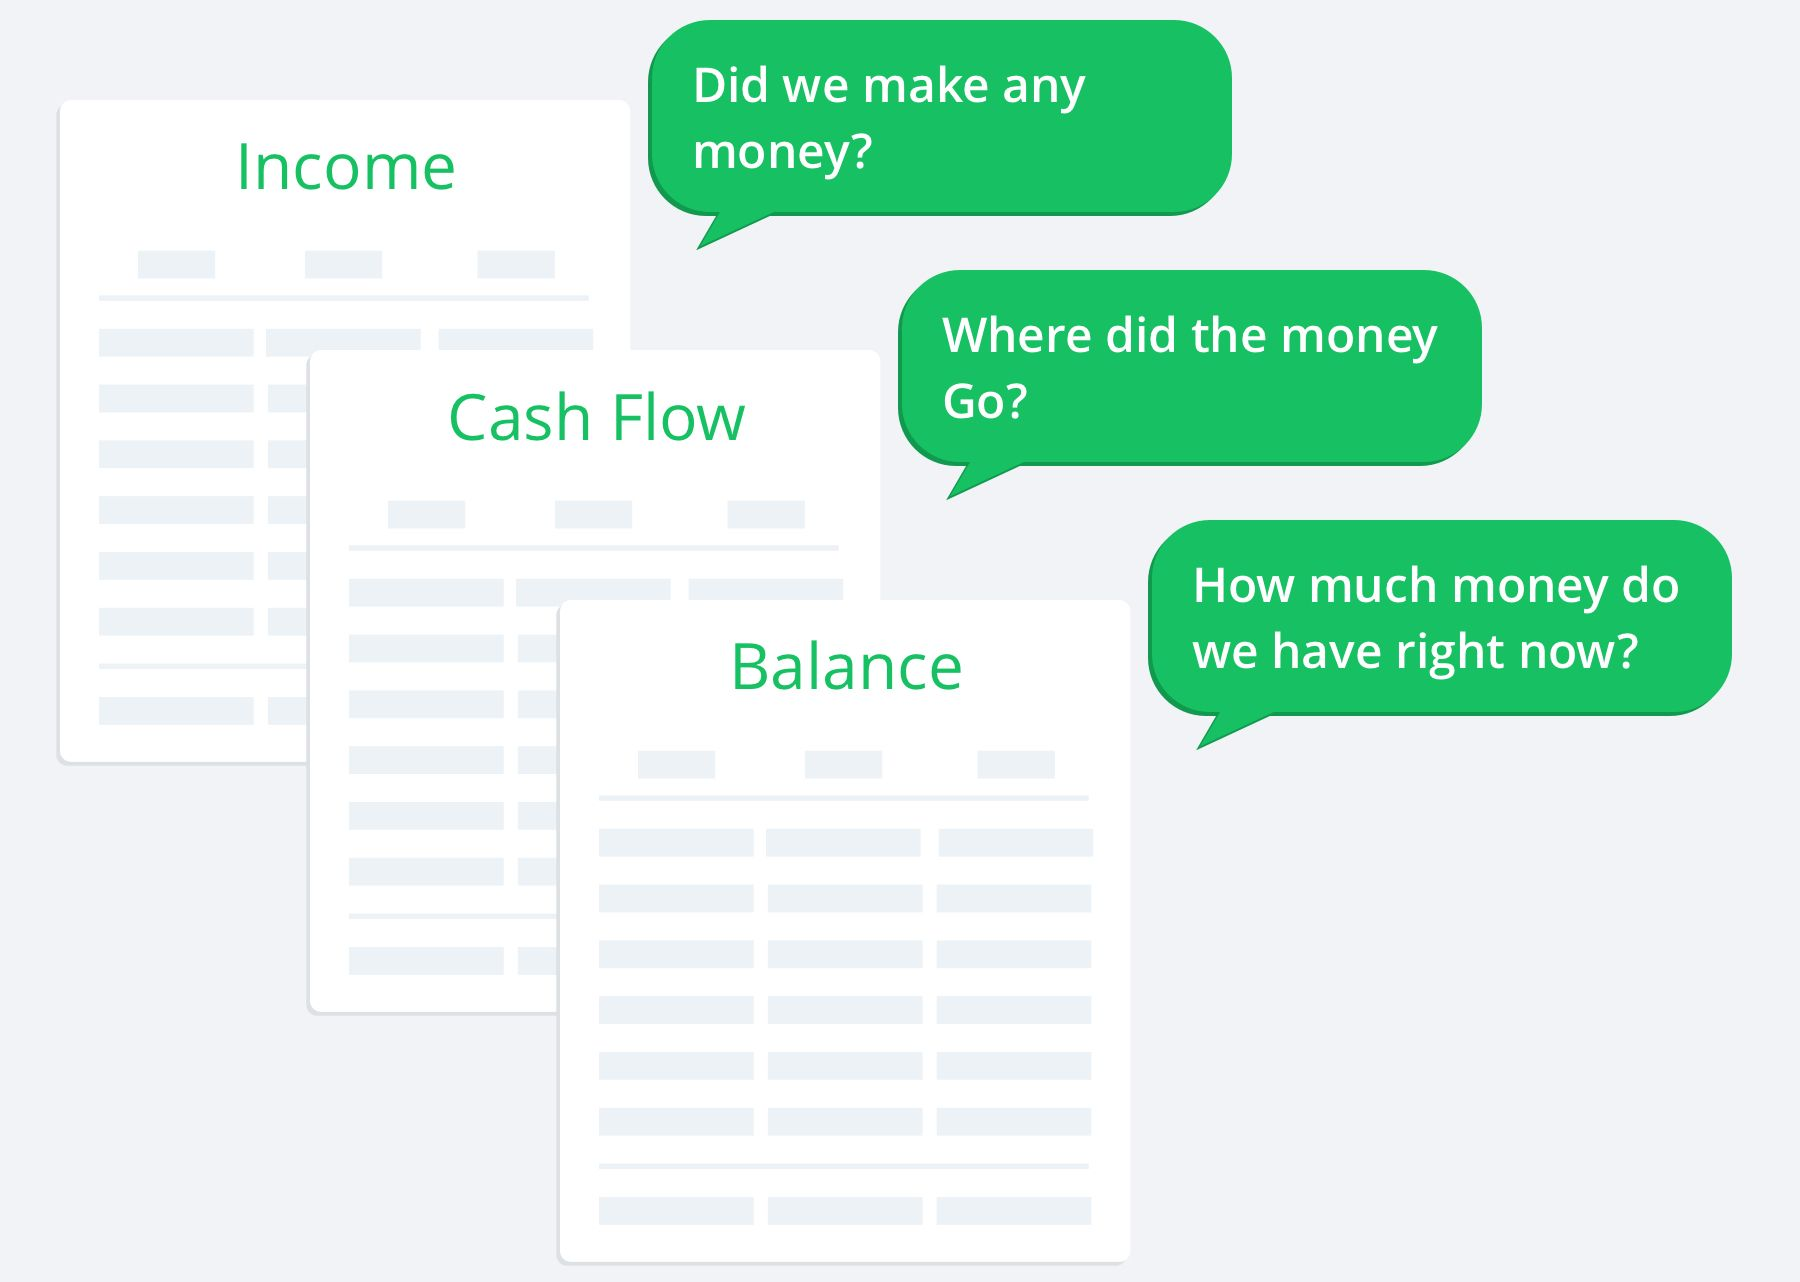 image of income statement, balance sheet and cash flow statement